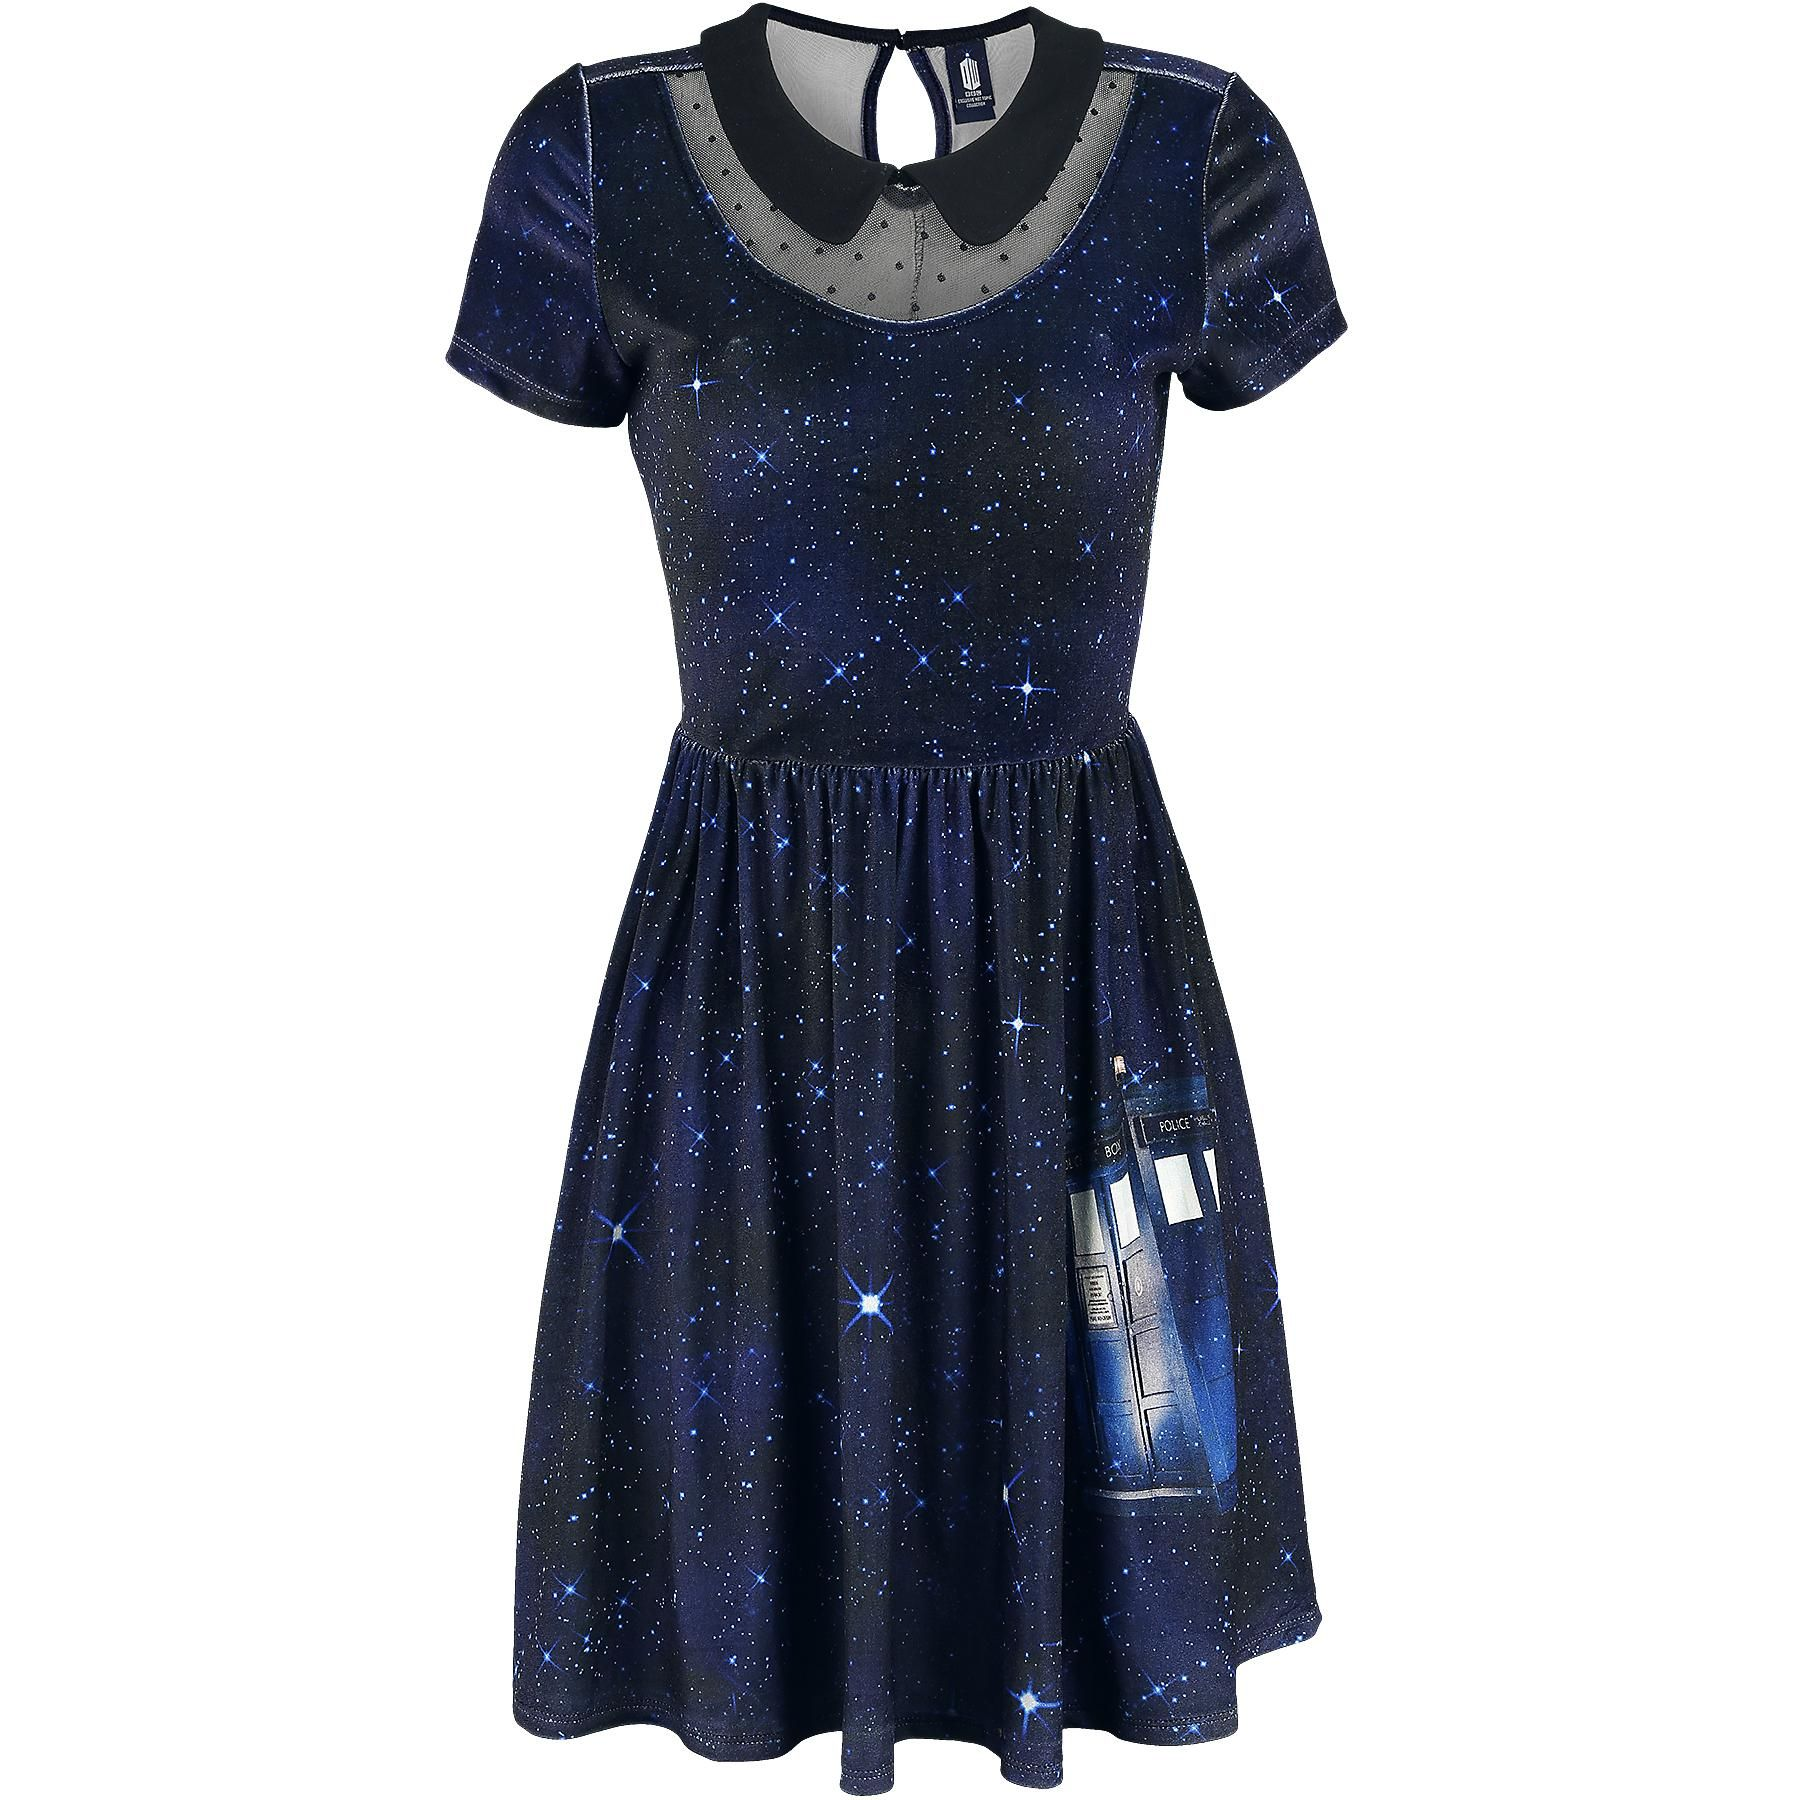 Tardis Galaxy Dress - Kurzes Kleid von Doctor Who | nerdstuff ...